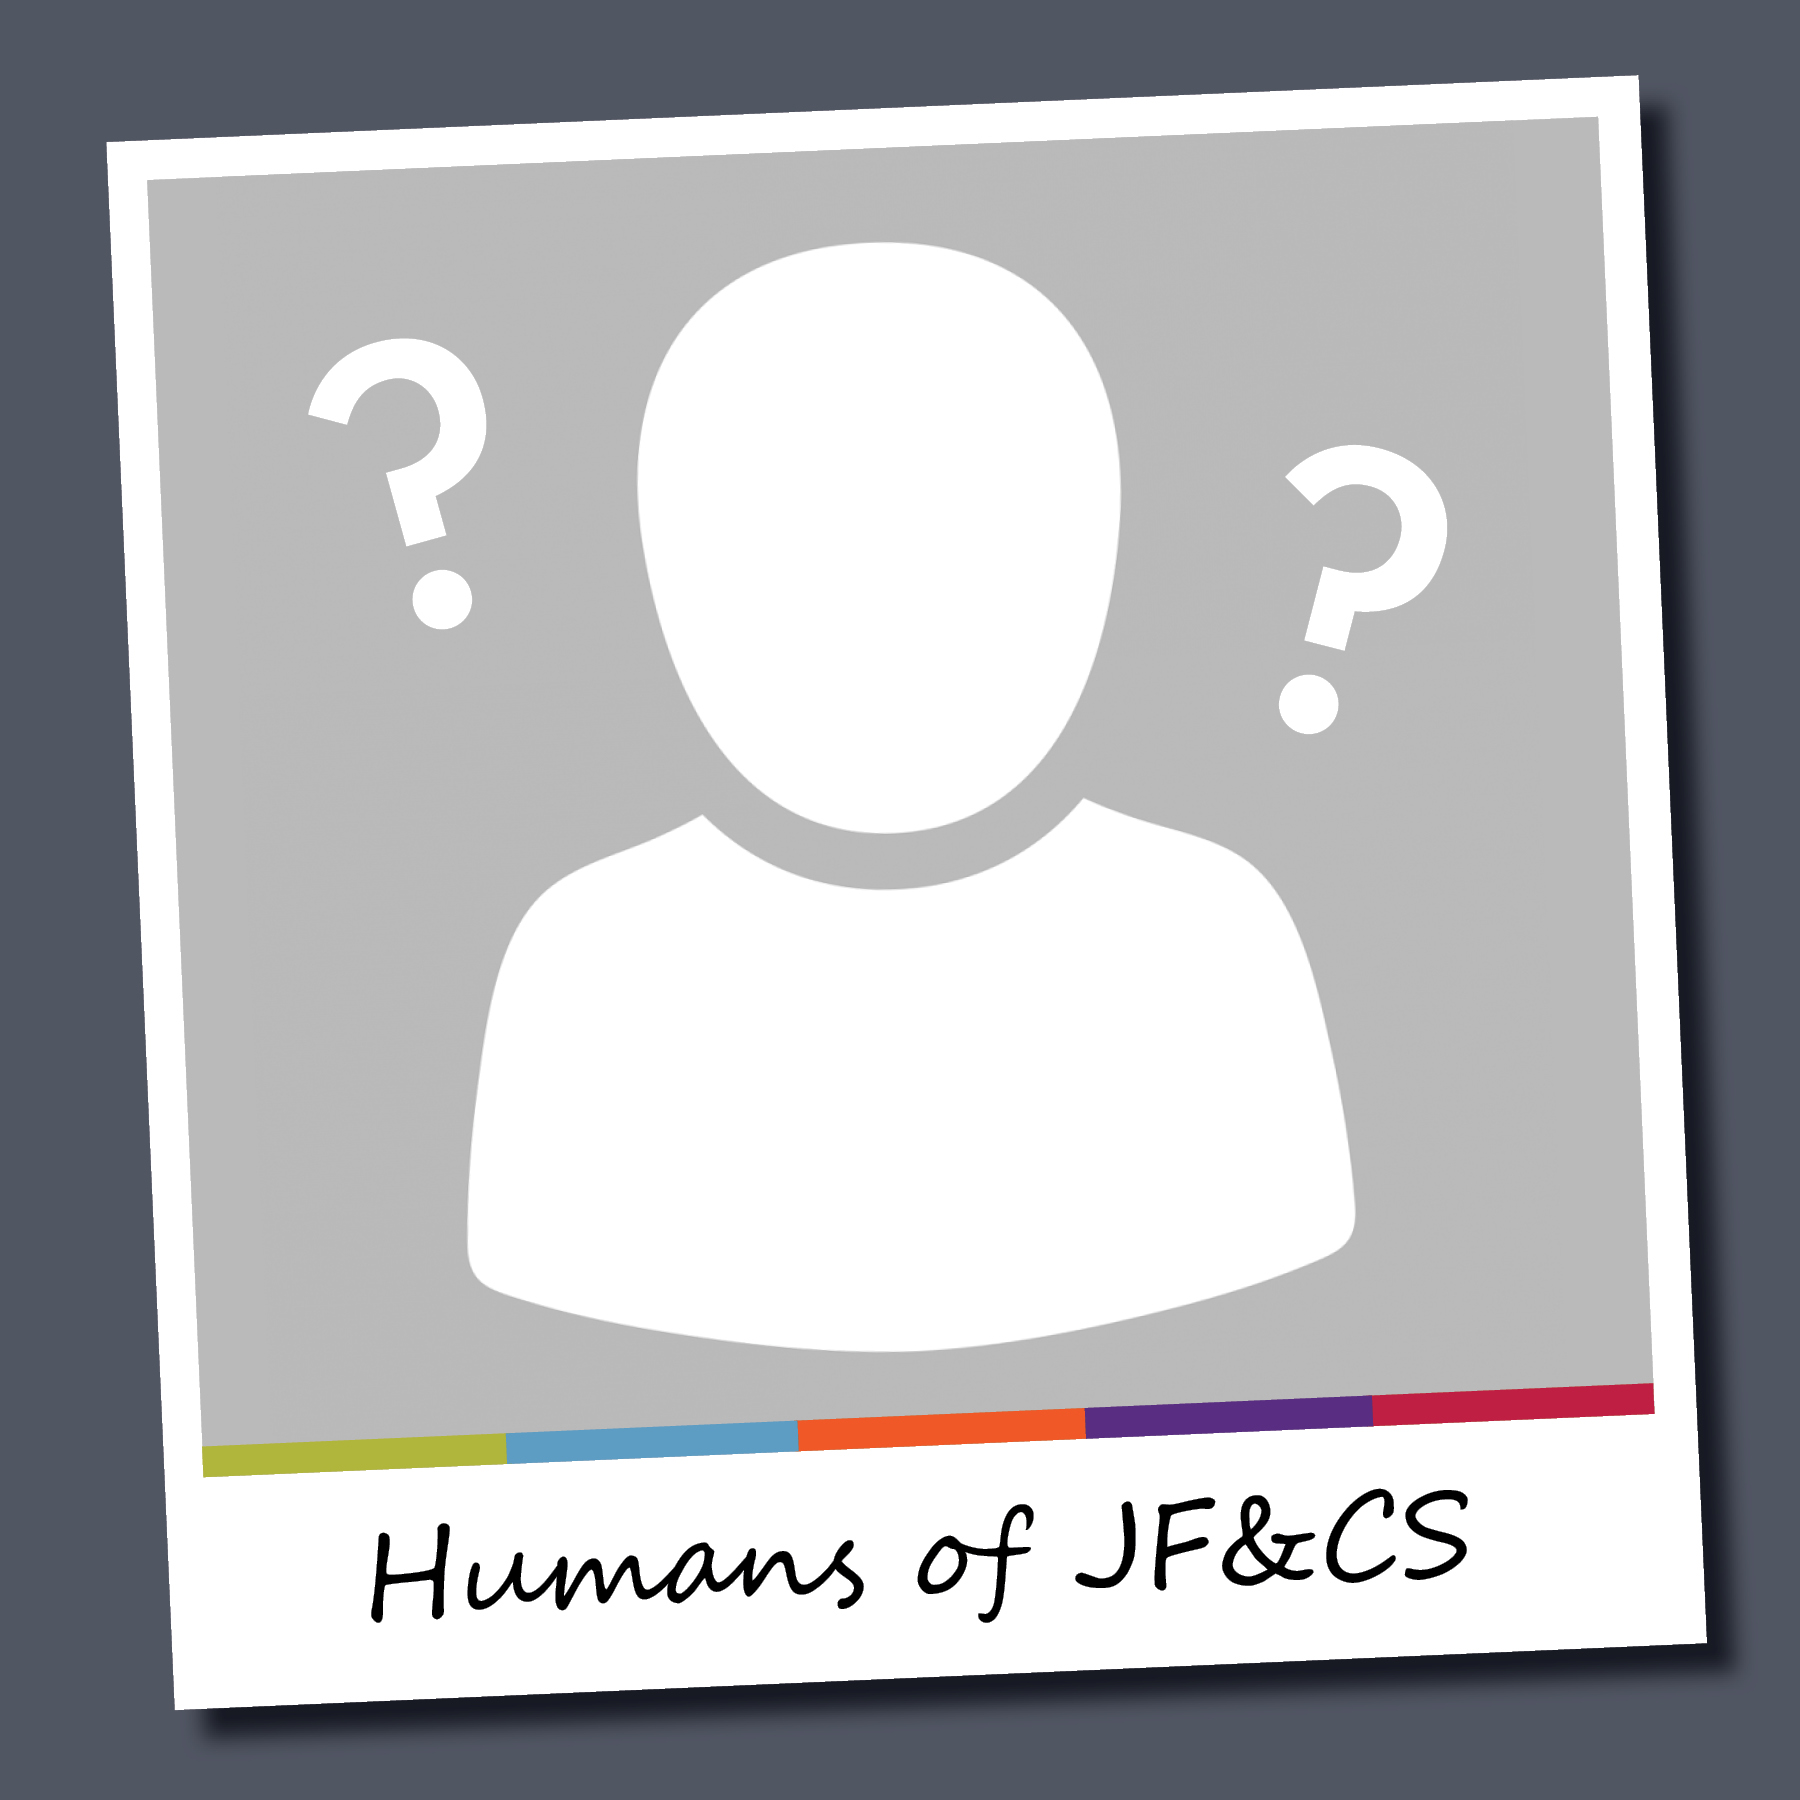 Humans of JF&CS